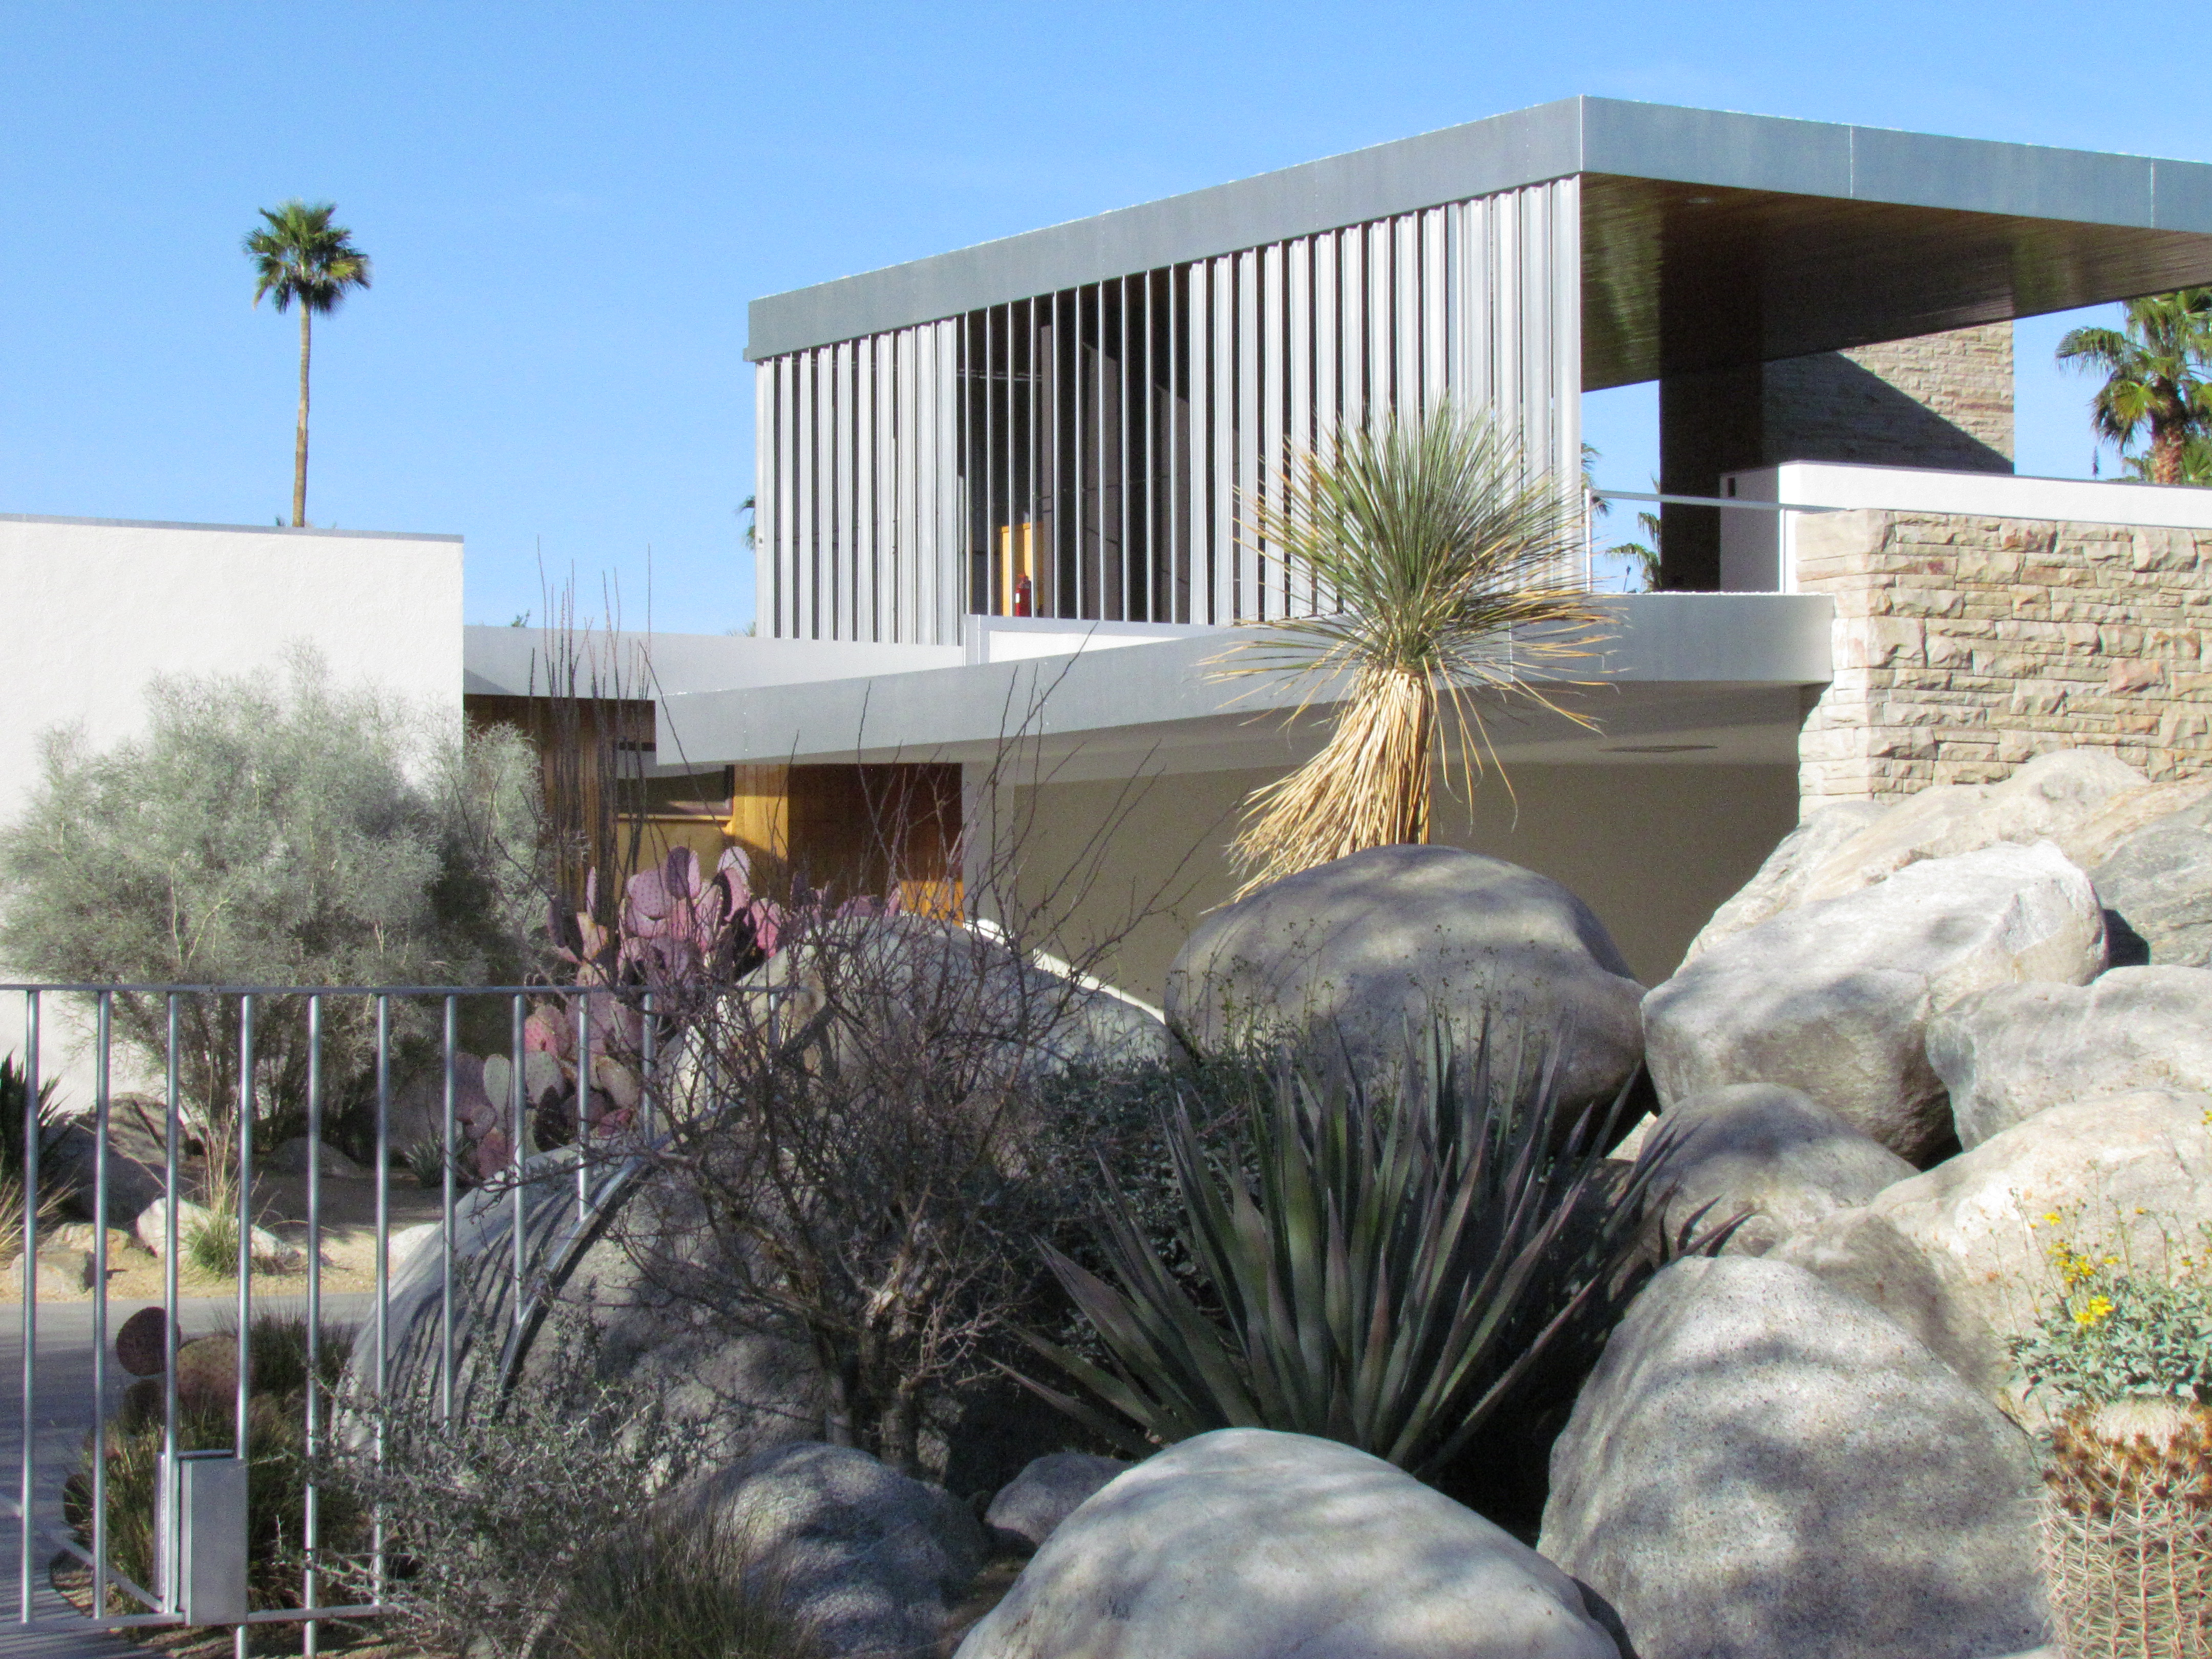 Palm springs ca mid century modern mecca - What is mid century modern ...